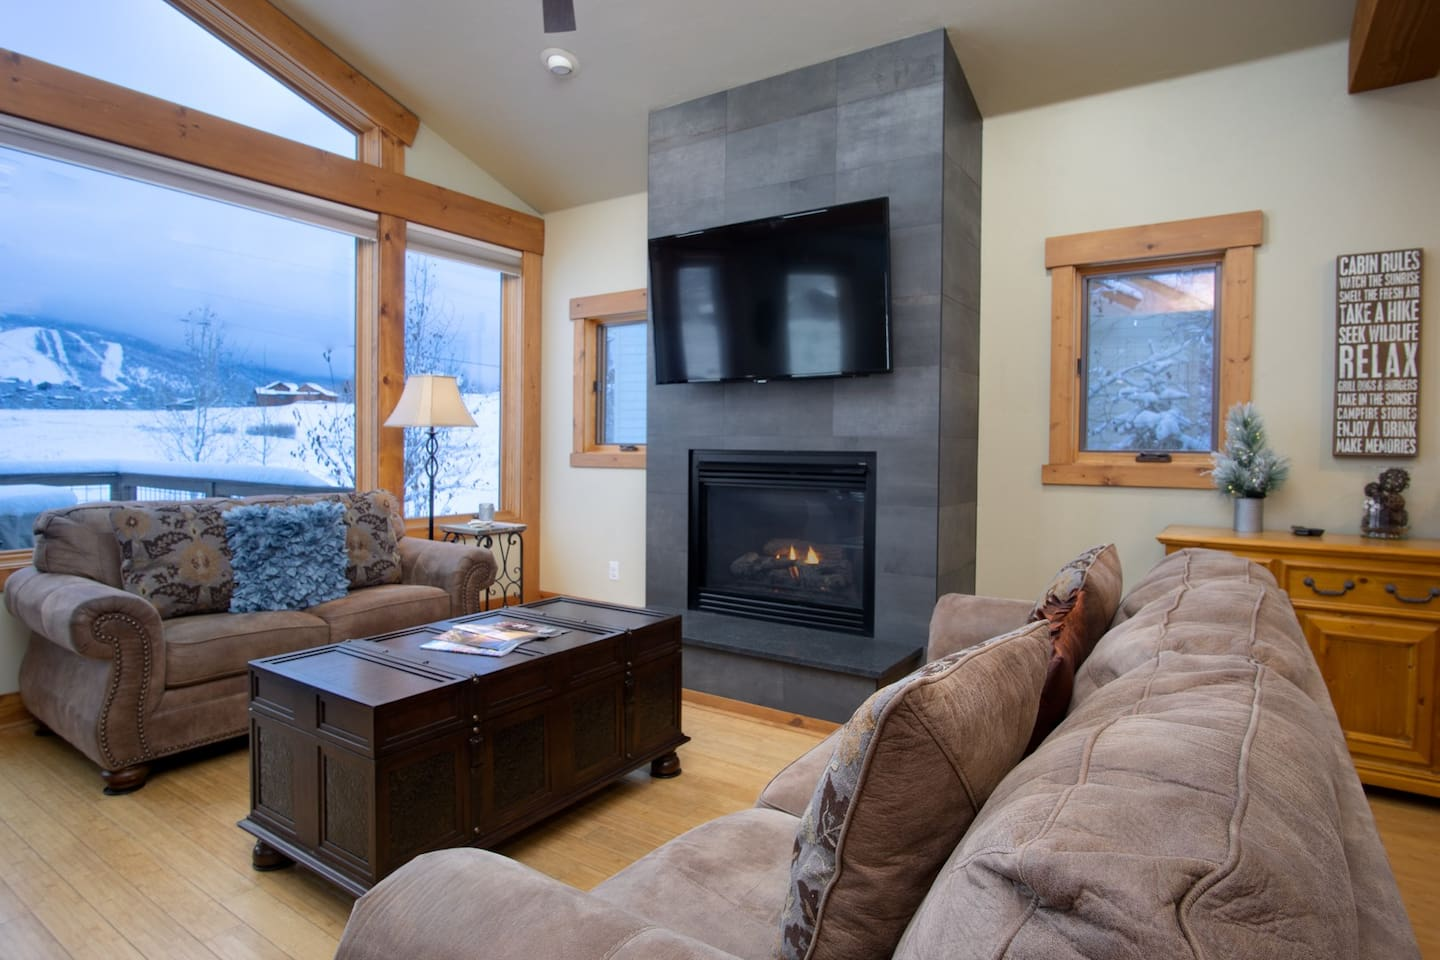 Check out the views from our updated living room!